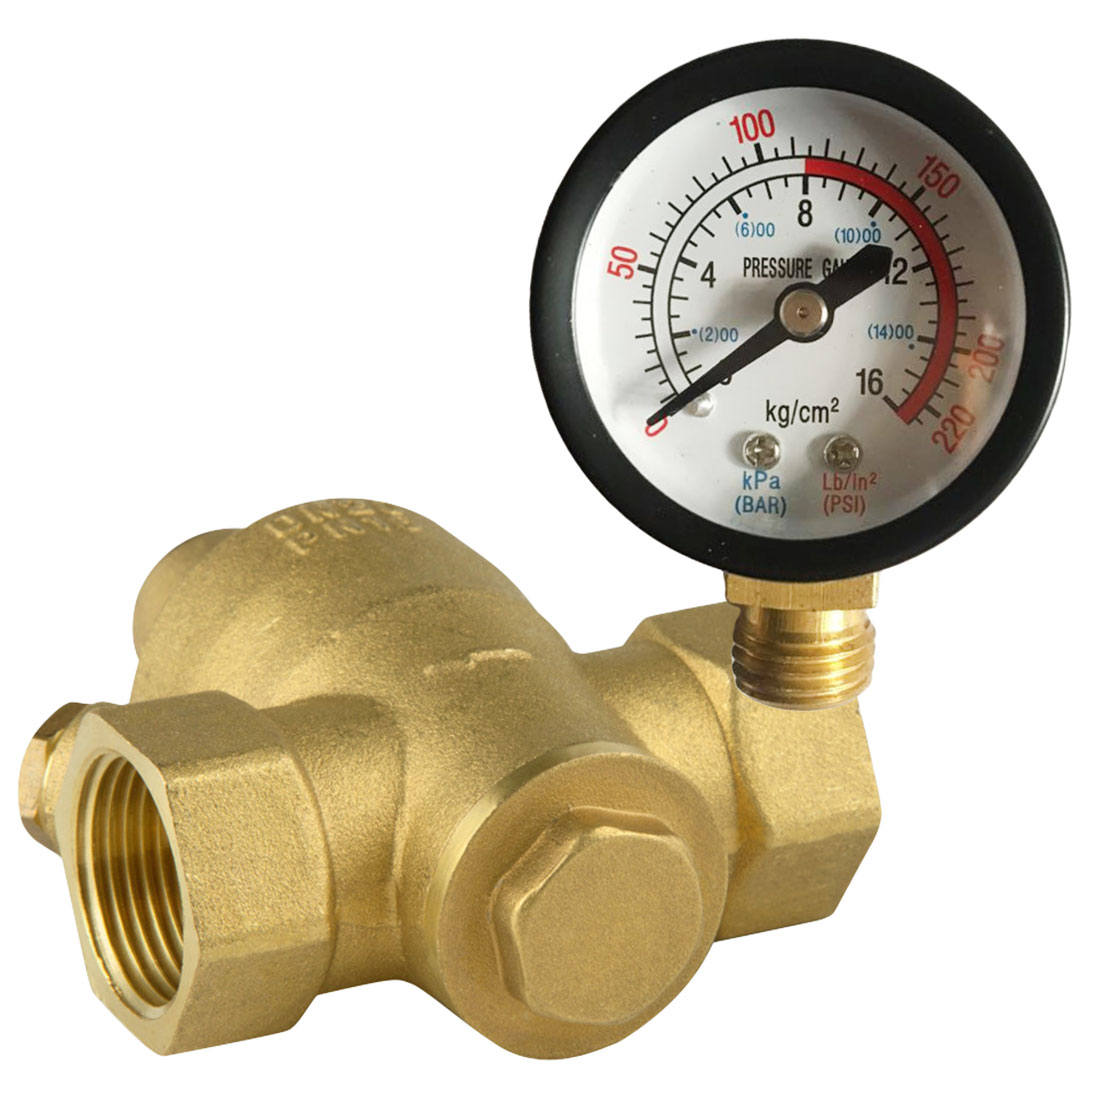 3/4 Connector Water Pressure Regulator Reliable Brass with Gauge Flow DN20 Adjustable Pressure Reducing Valves